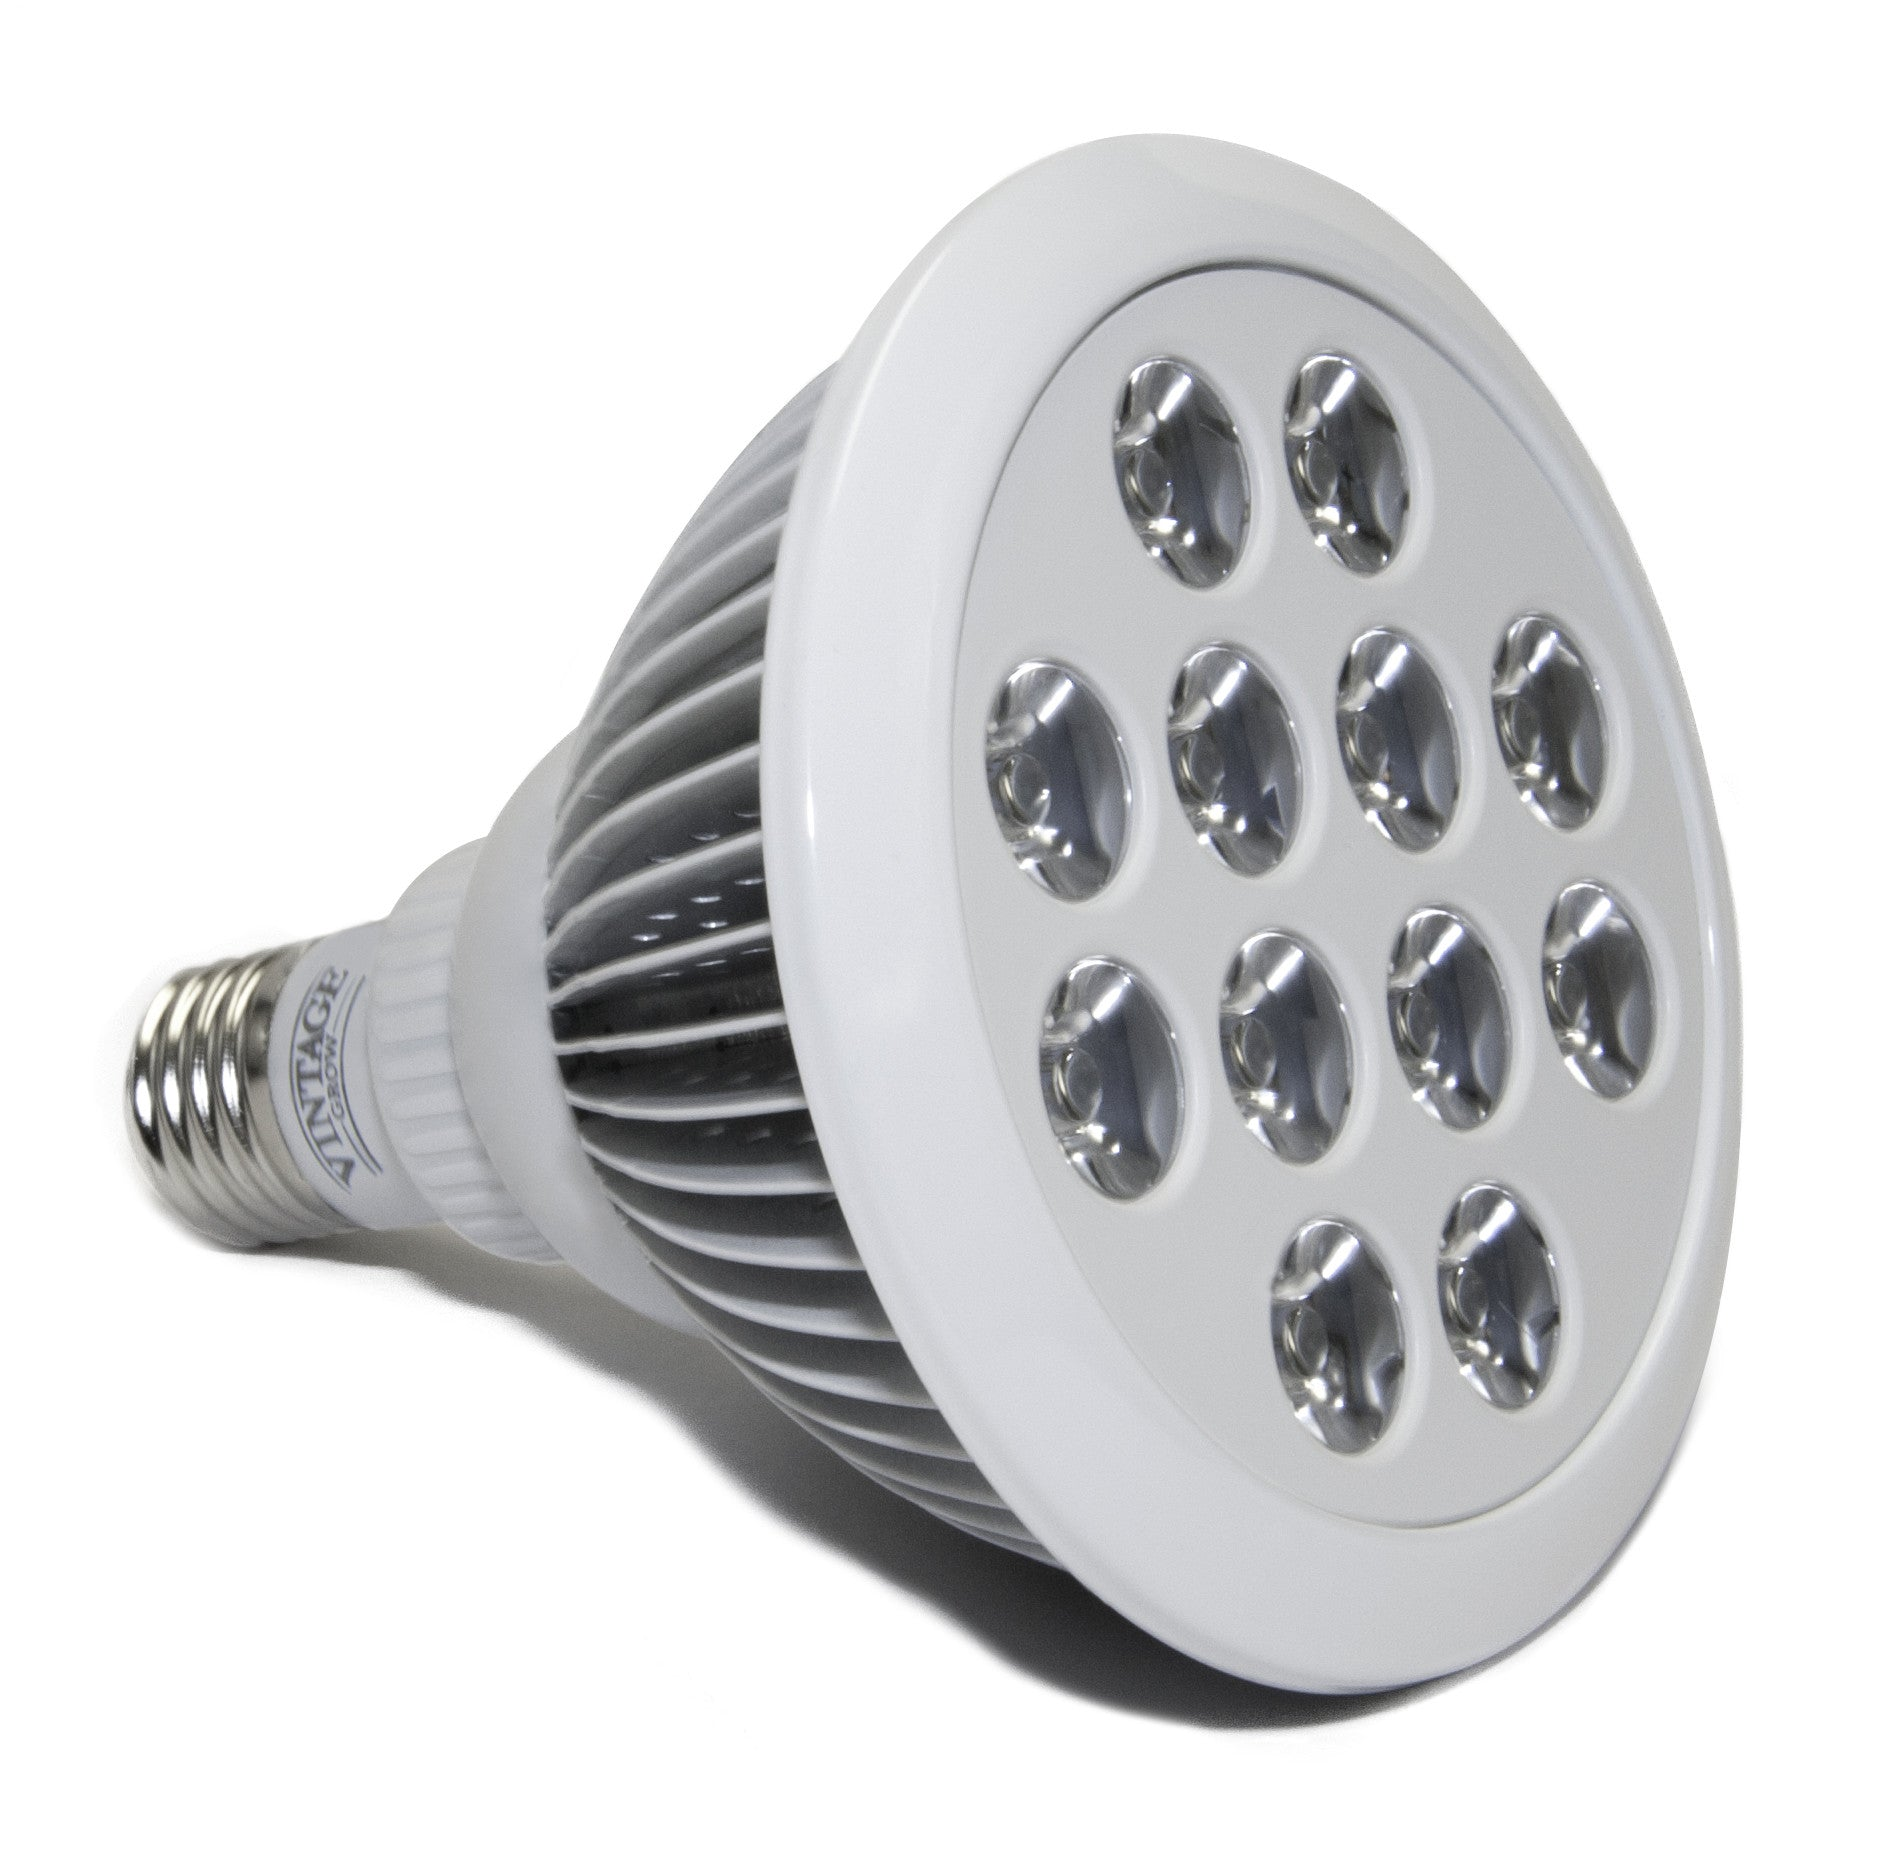 splicing retrofit led pin protection light support to grow more high lighting temperature together work lights